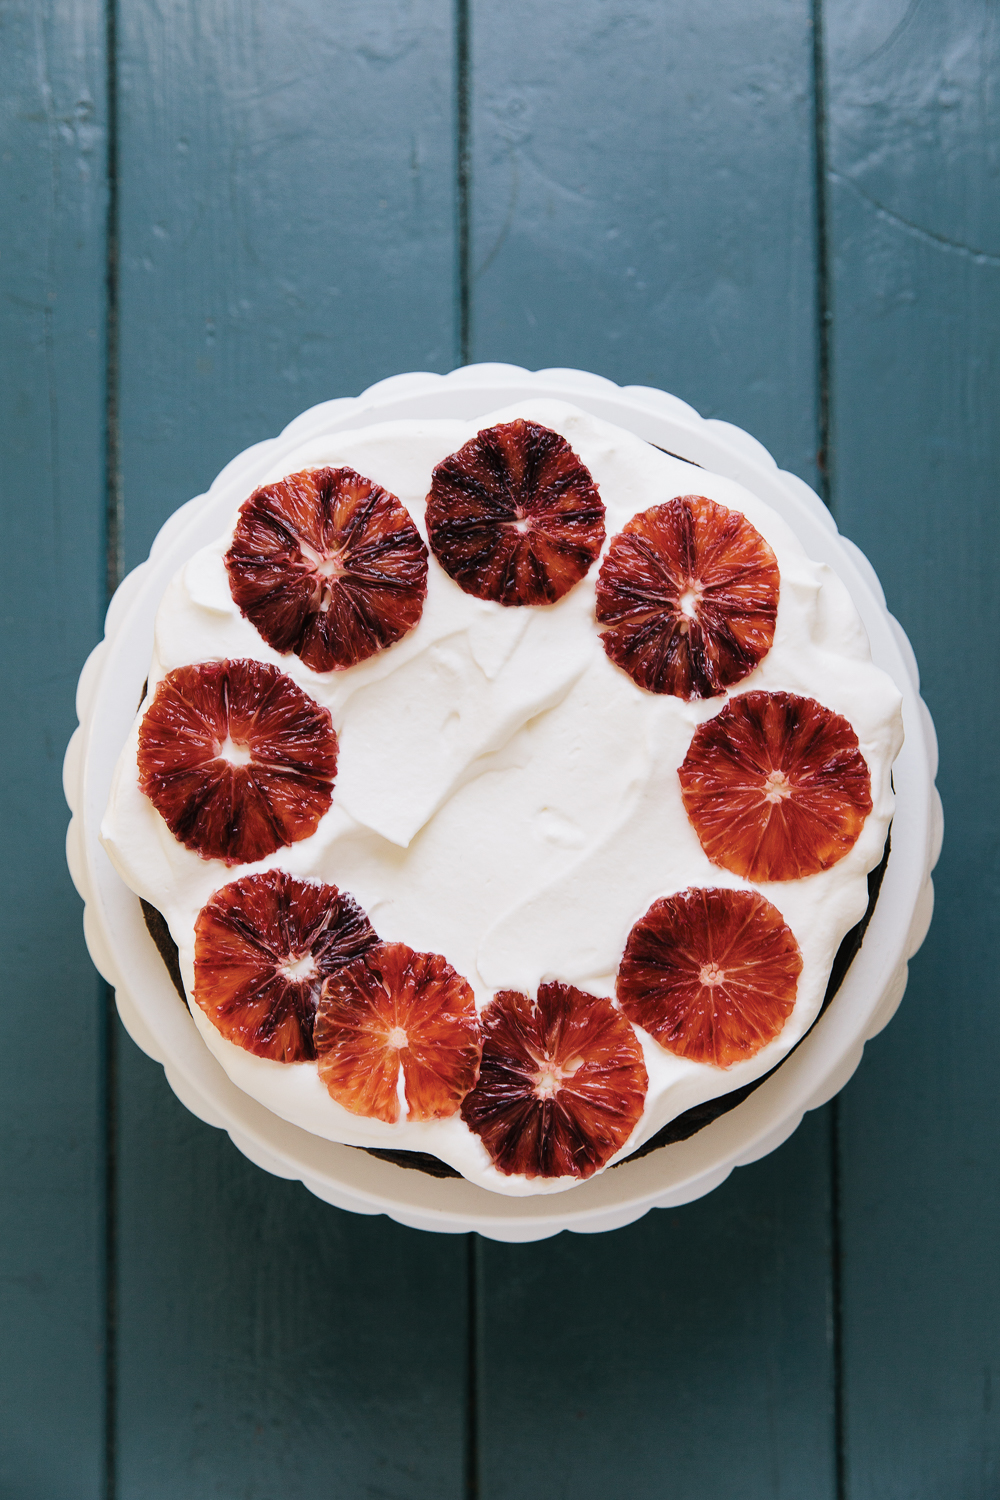 Winter-17_Citrus_Choc_Cake.jpg